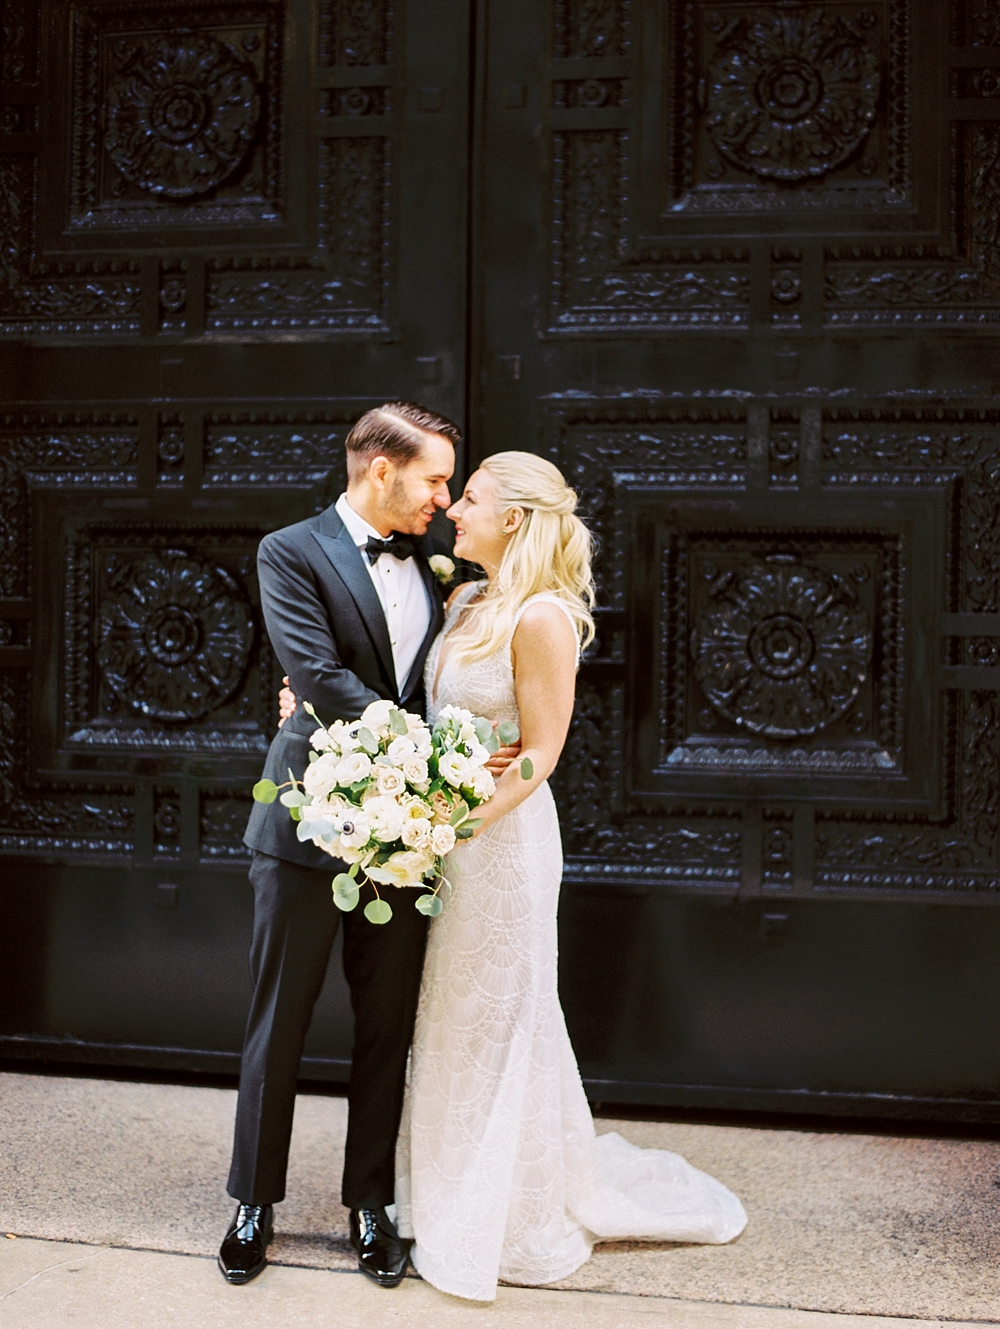 kristin-la-voie-photography-chicago-Wedding-Photographer-kimpton-gray-hotel-46